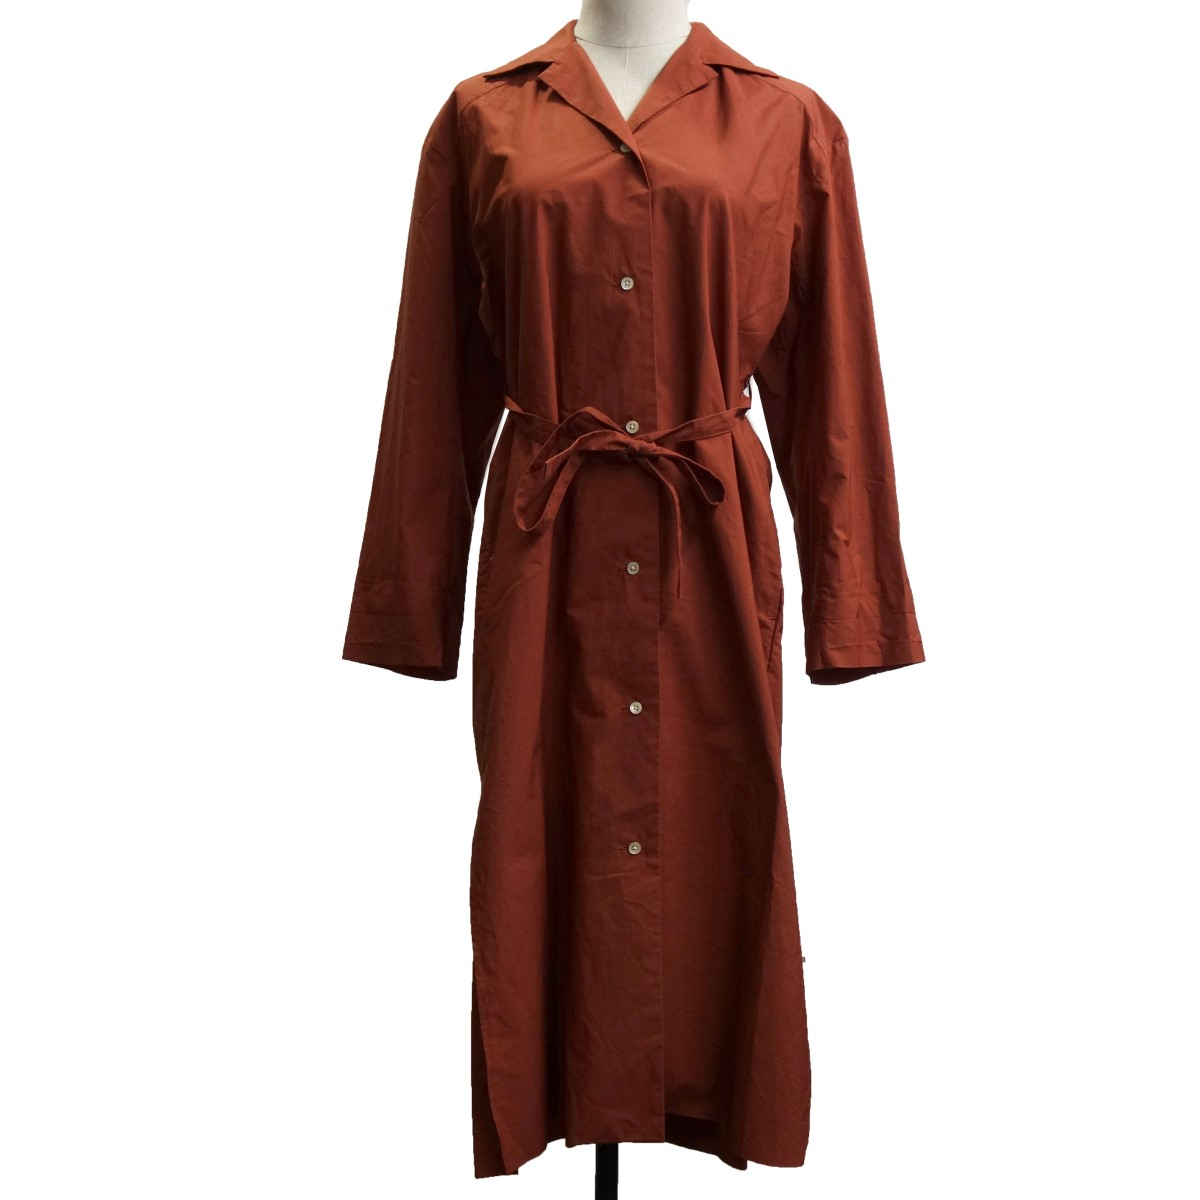 【中古】AURALEE 18SS 「SELVEDGE WEATHER CLOTH LONGSHIRT DRESS」 ブラウン サイズ:0 【060420】(オーラリー)